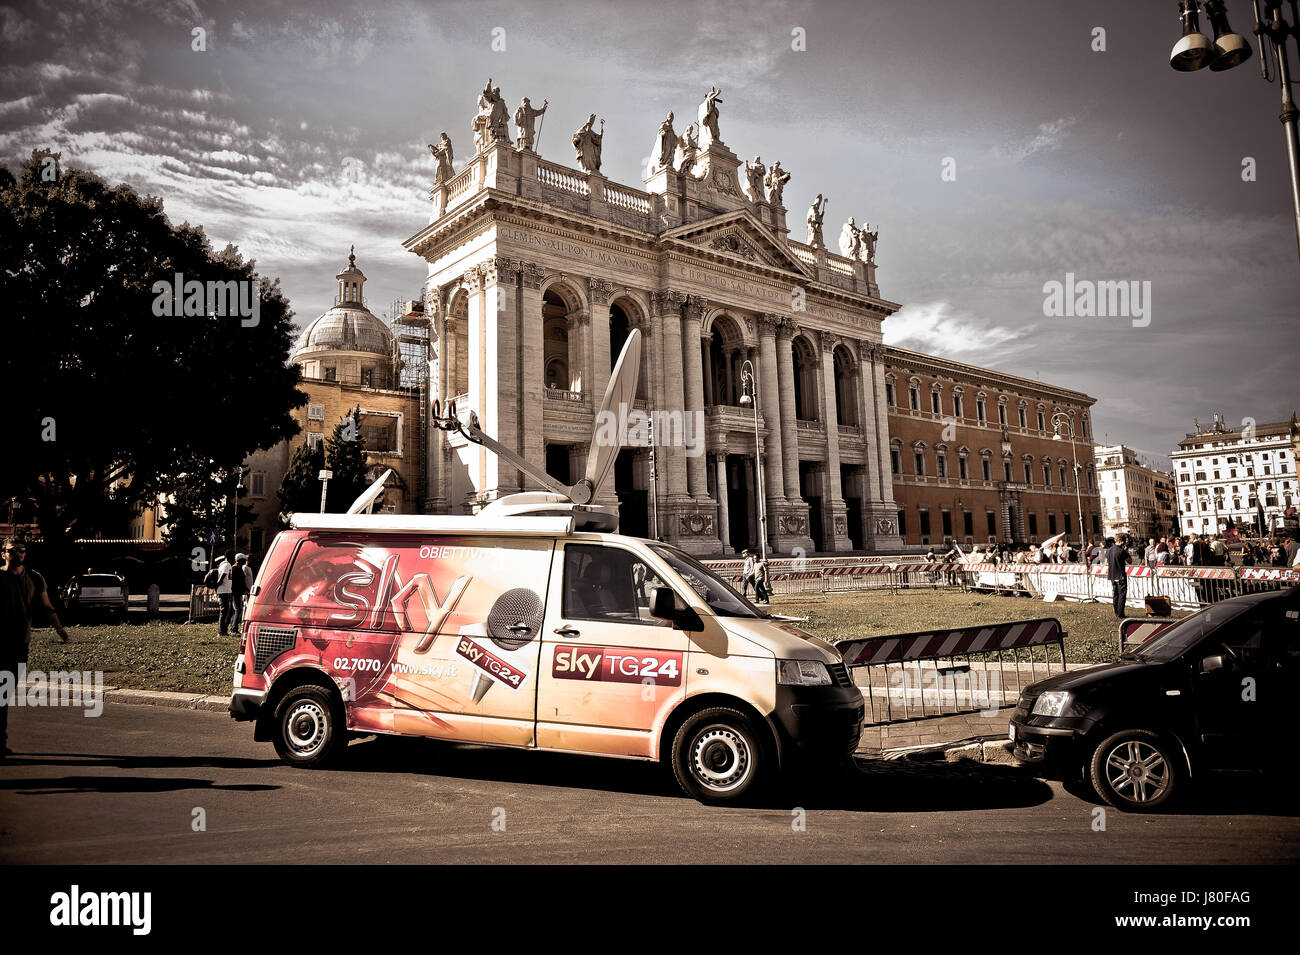 757681849bec Sky Television - Satellite dish mounted on the roof of mobile television  station in Rome